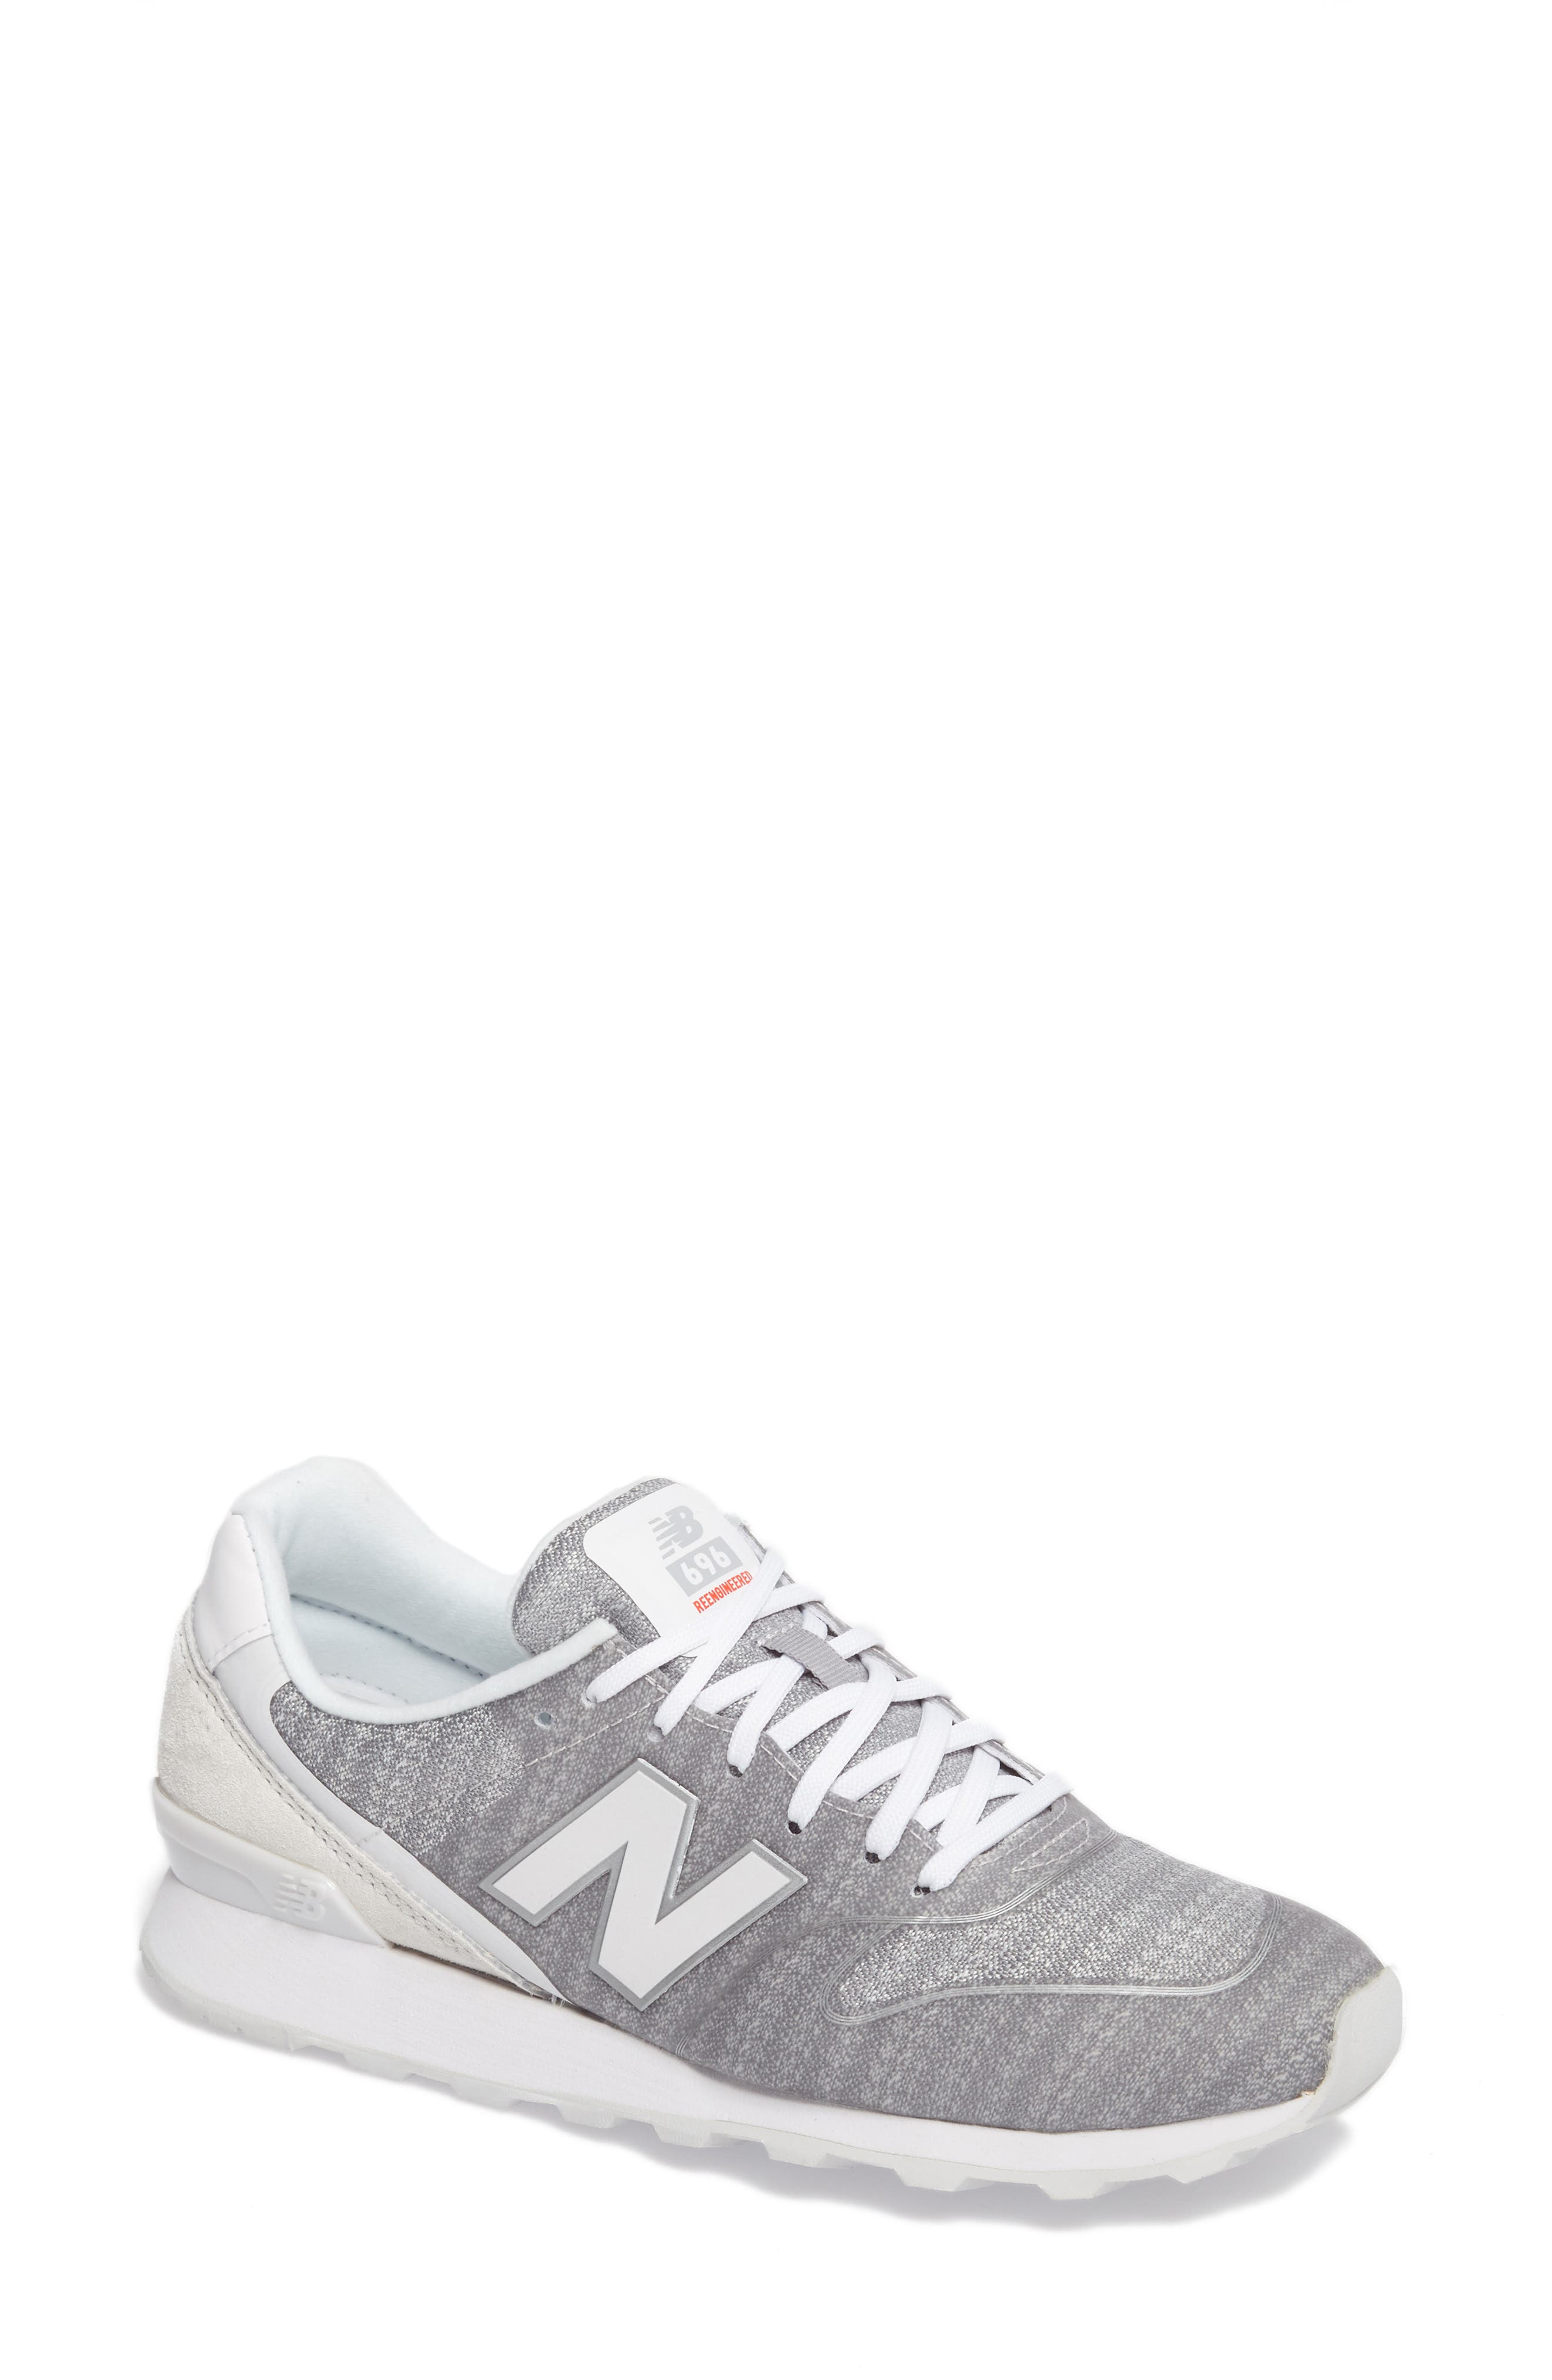 New Balance 696 Sneaker (Women)